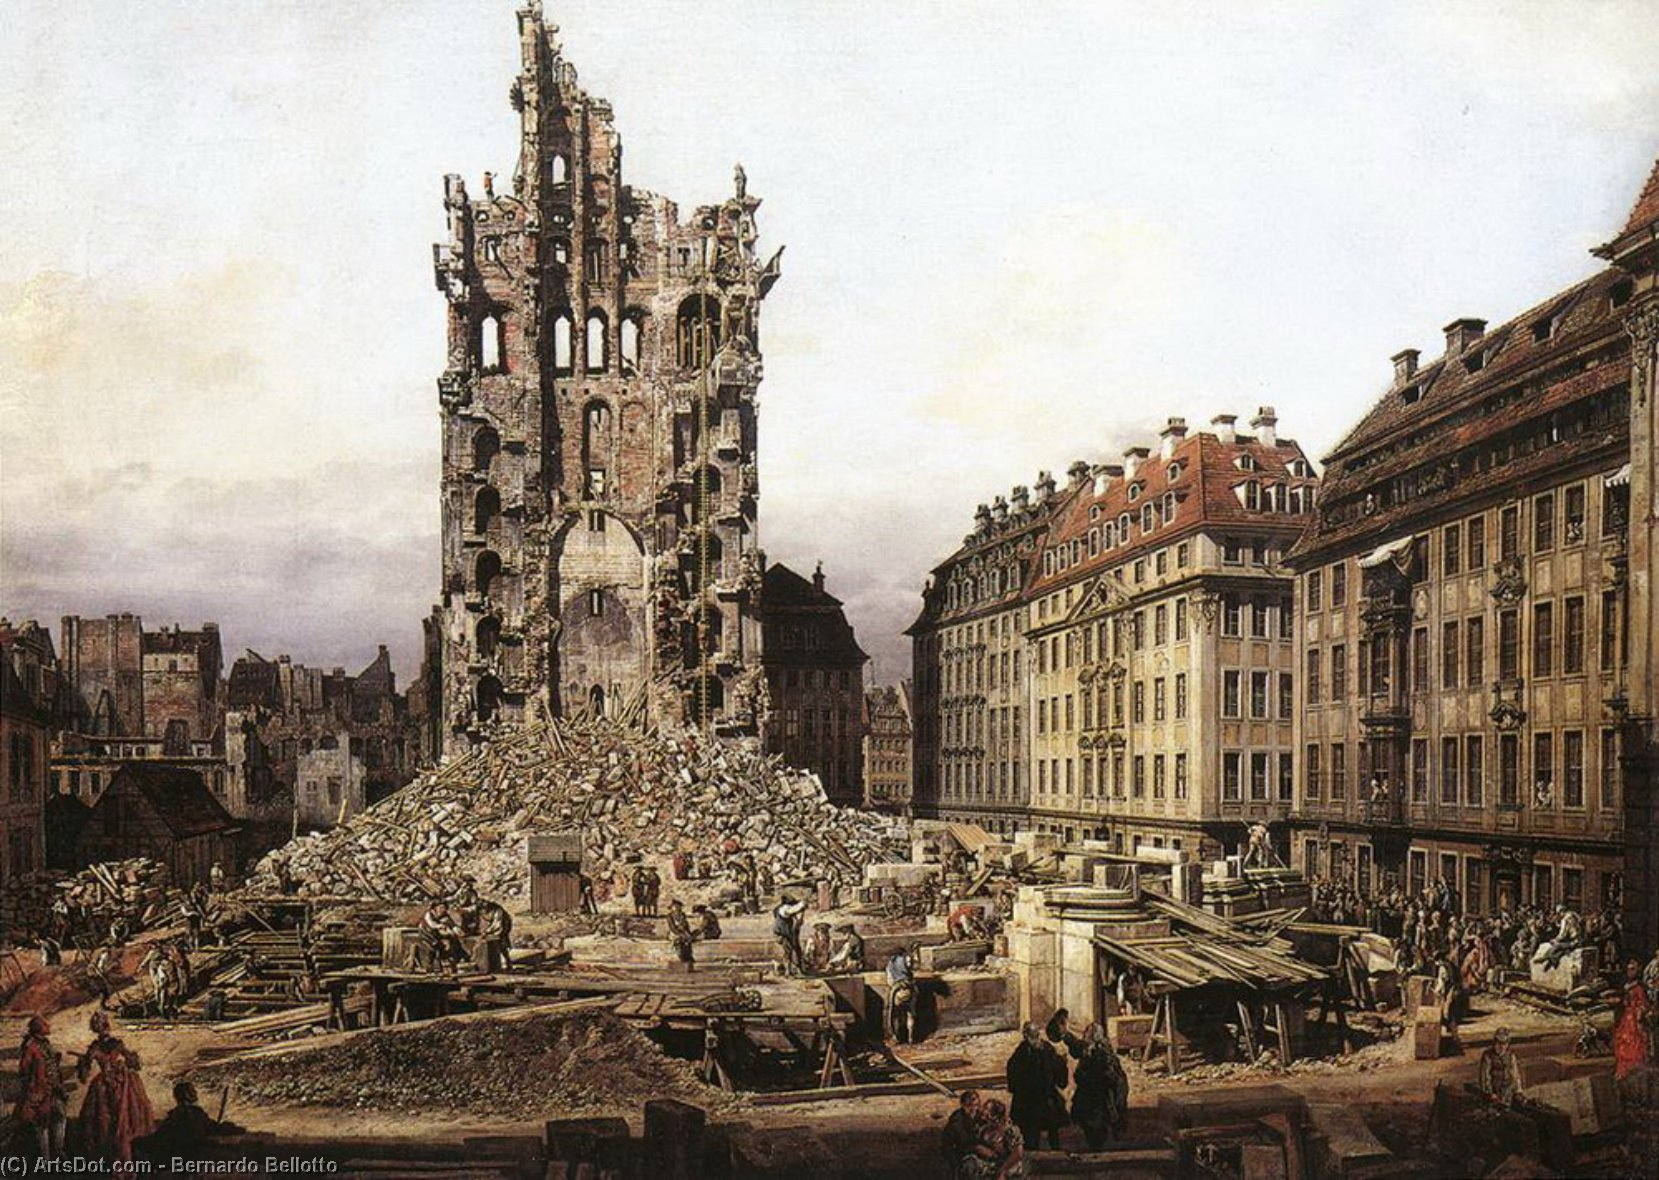 Wikioo.org - The Encyclopedia of Fine Arts - Painting, Artwork by Bernardo Bellotto - The Ruins of the Old Kreuzkirche in Dresden